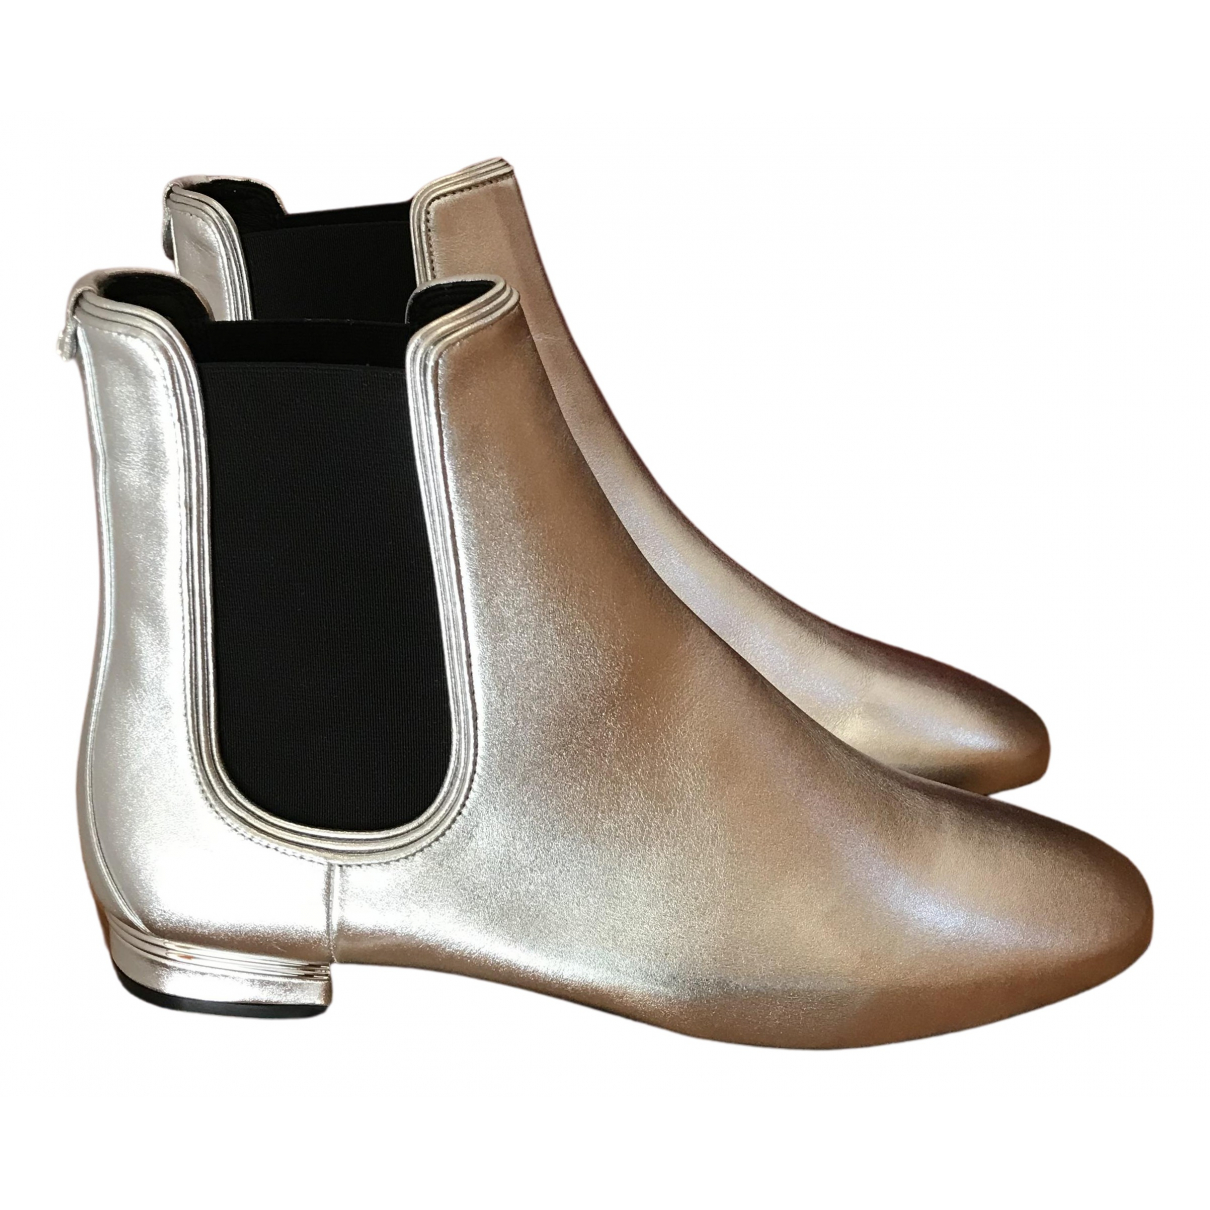 Salvatore Ferragamo N Silver Leather Ankle boots for Women 9 US